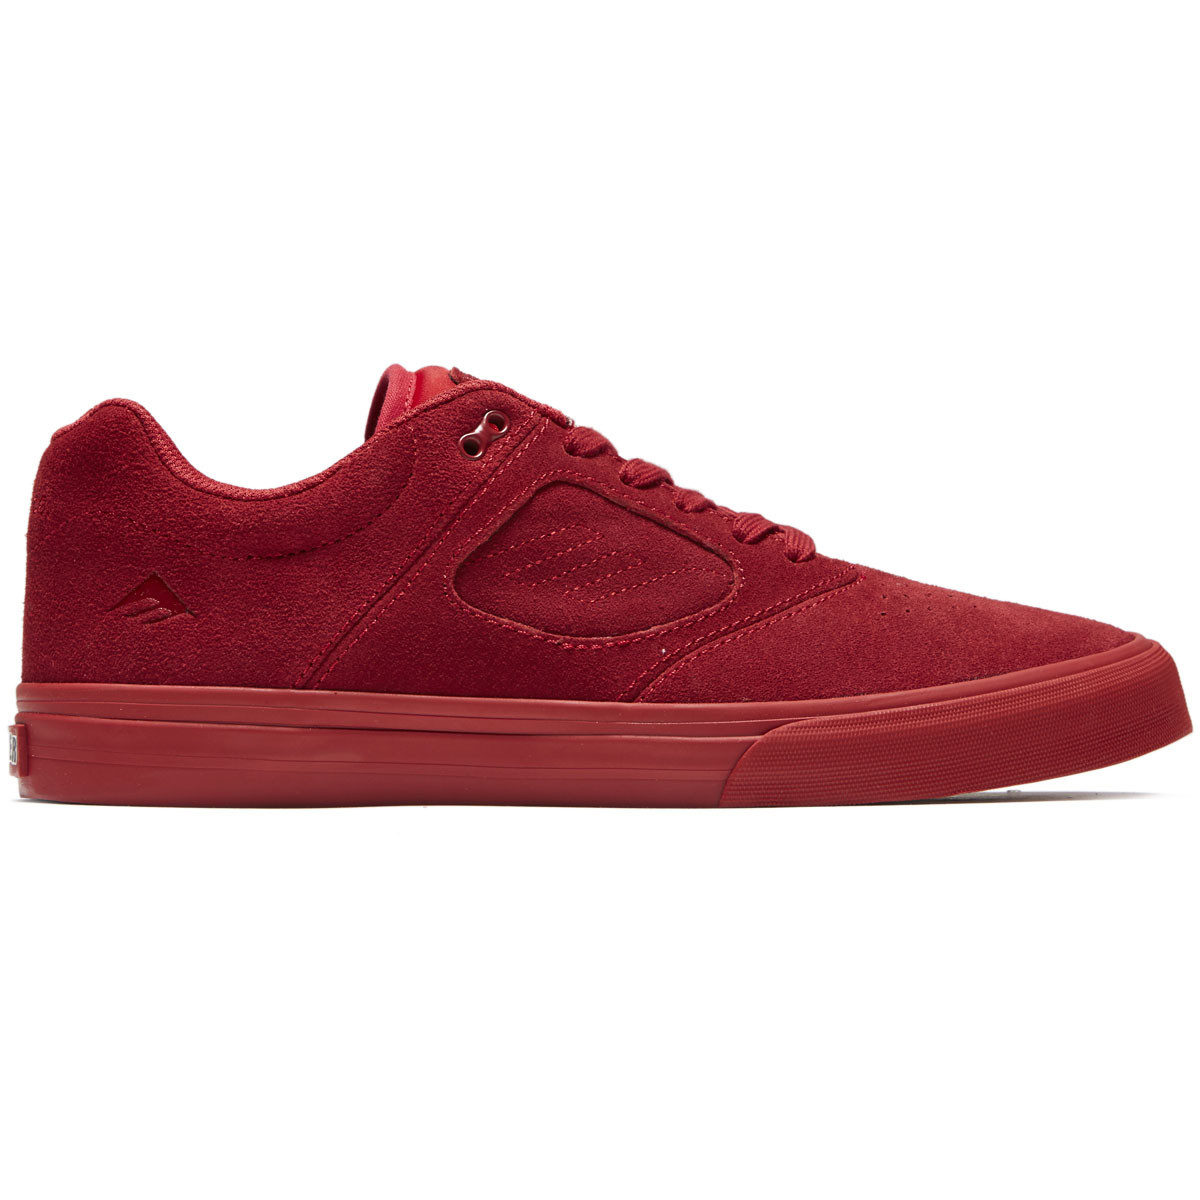 acc4a32fa041 Emerica x Baker Reynolds 3 G6 Vulc Shoes - Red - 10.0